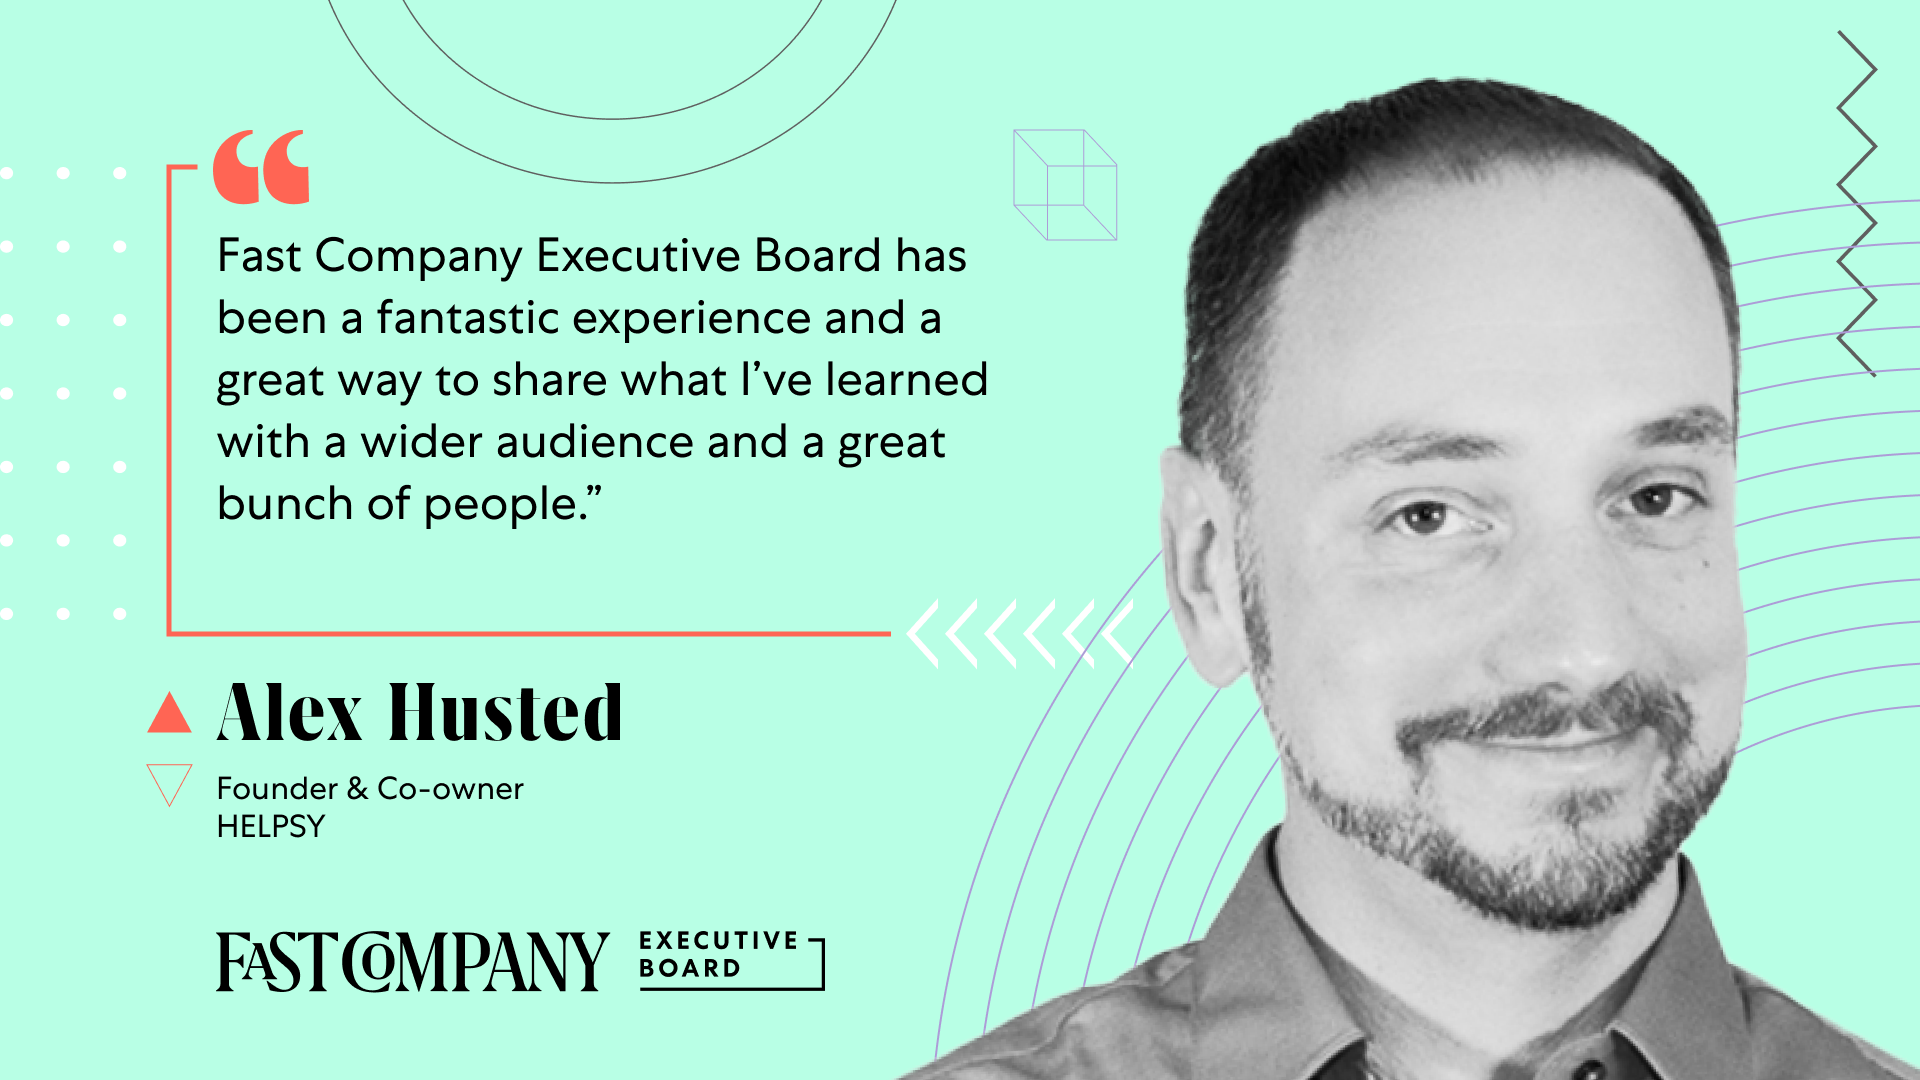 Fast Company Executive Board Gives Alex Husted Support for His Company's Environmental Mission